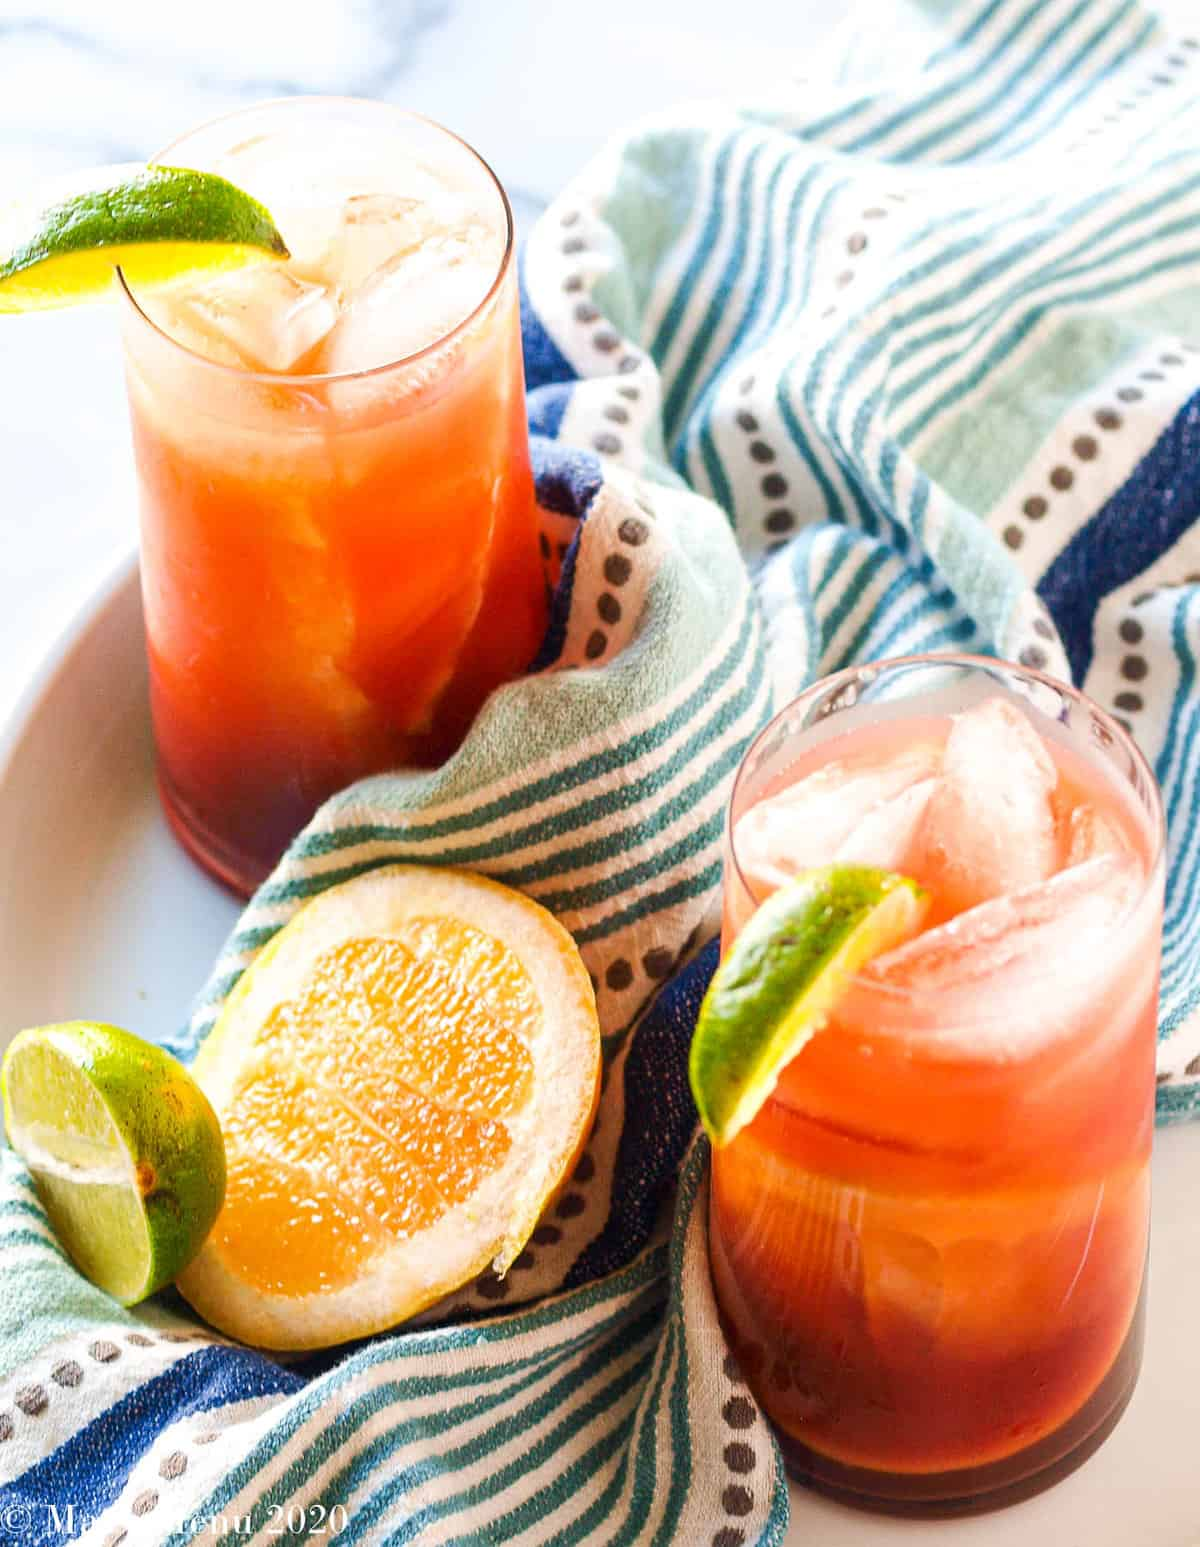 an overhead shot of 2 glasses of pomegranate sea breeze cocktails on a white platter with a blue striped towel. a wedge of grapefruit and lime sit between the cups